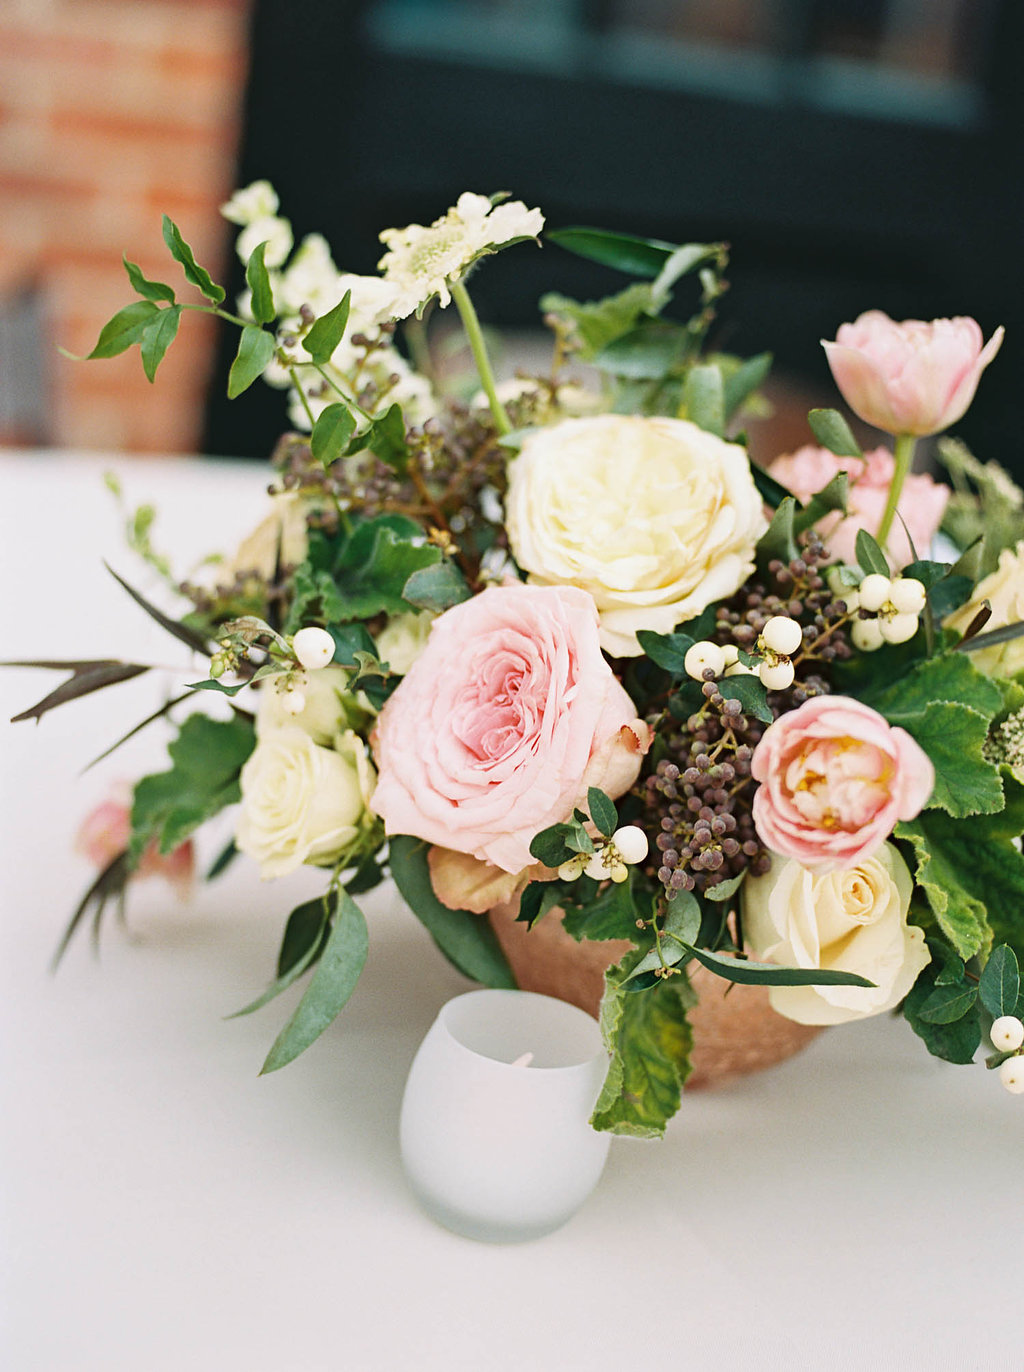 Cheekwood Botanical Garden Wedding // Blush and greenery centerpiece with garden roses, Queen Anne's Lace, and jasmine